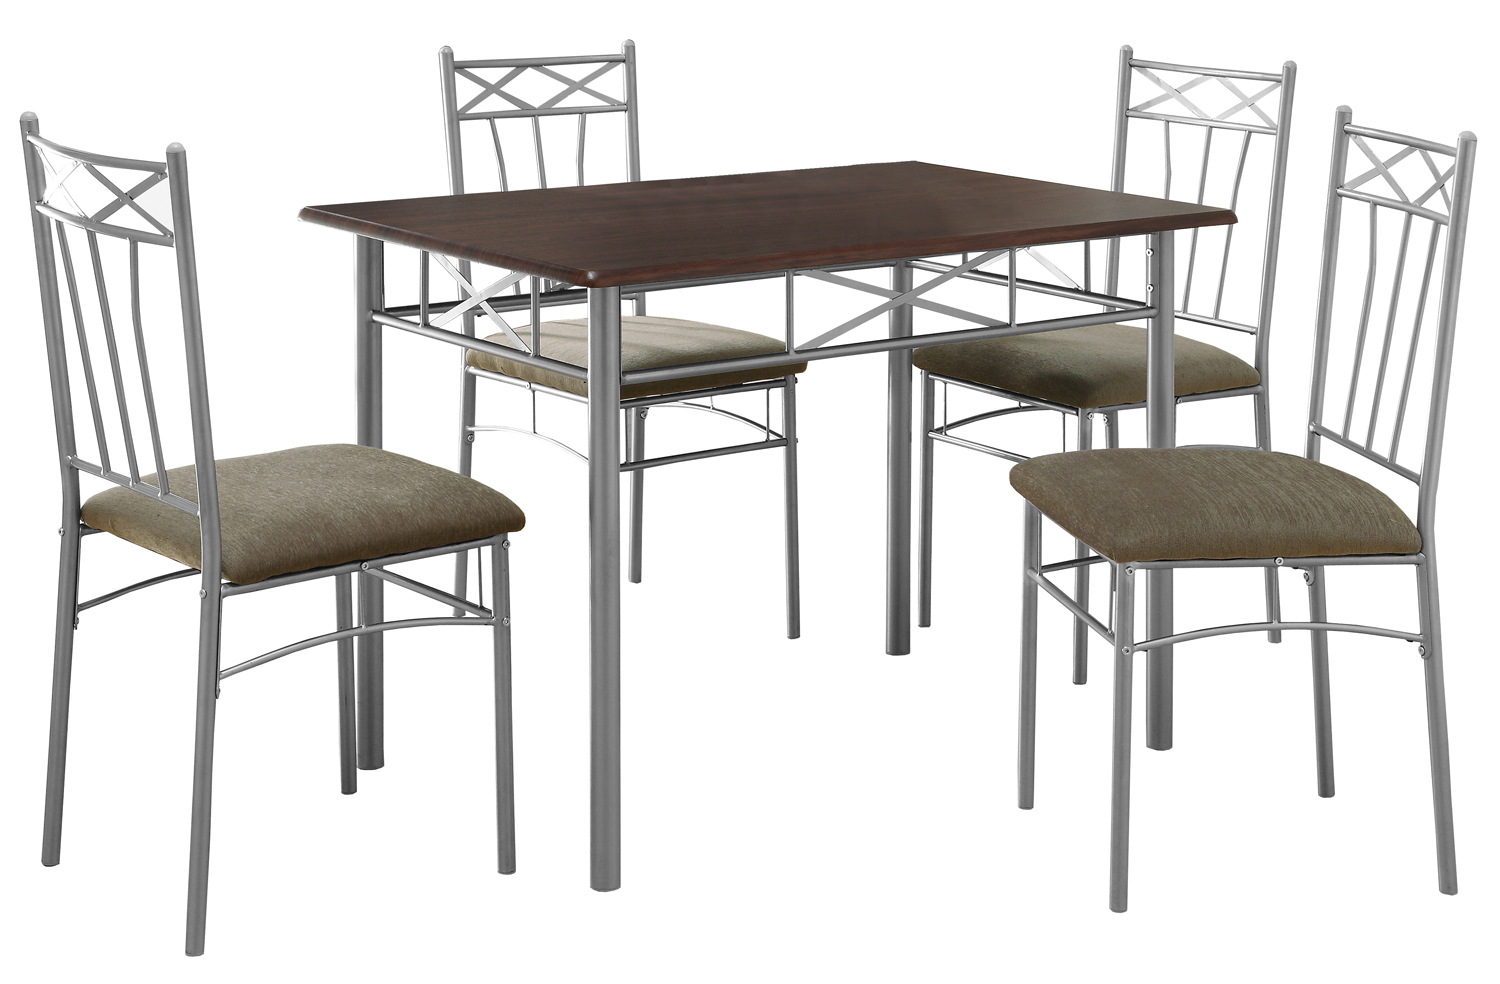 Dining Set - 5 Pieces Set / Cappuccino / Silver Metal